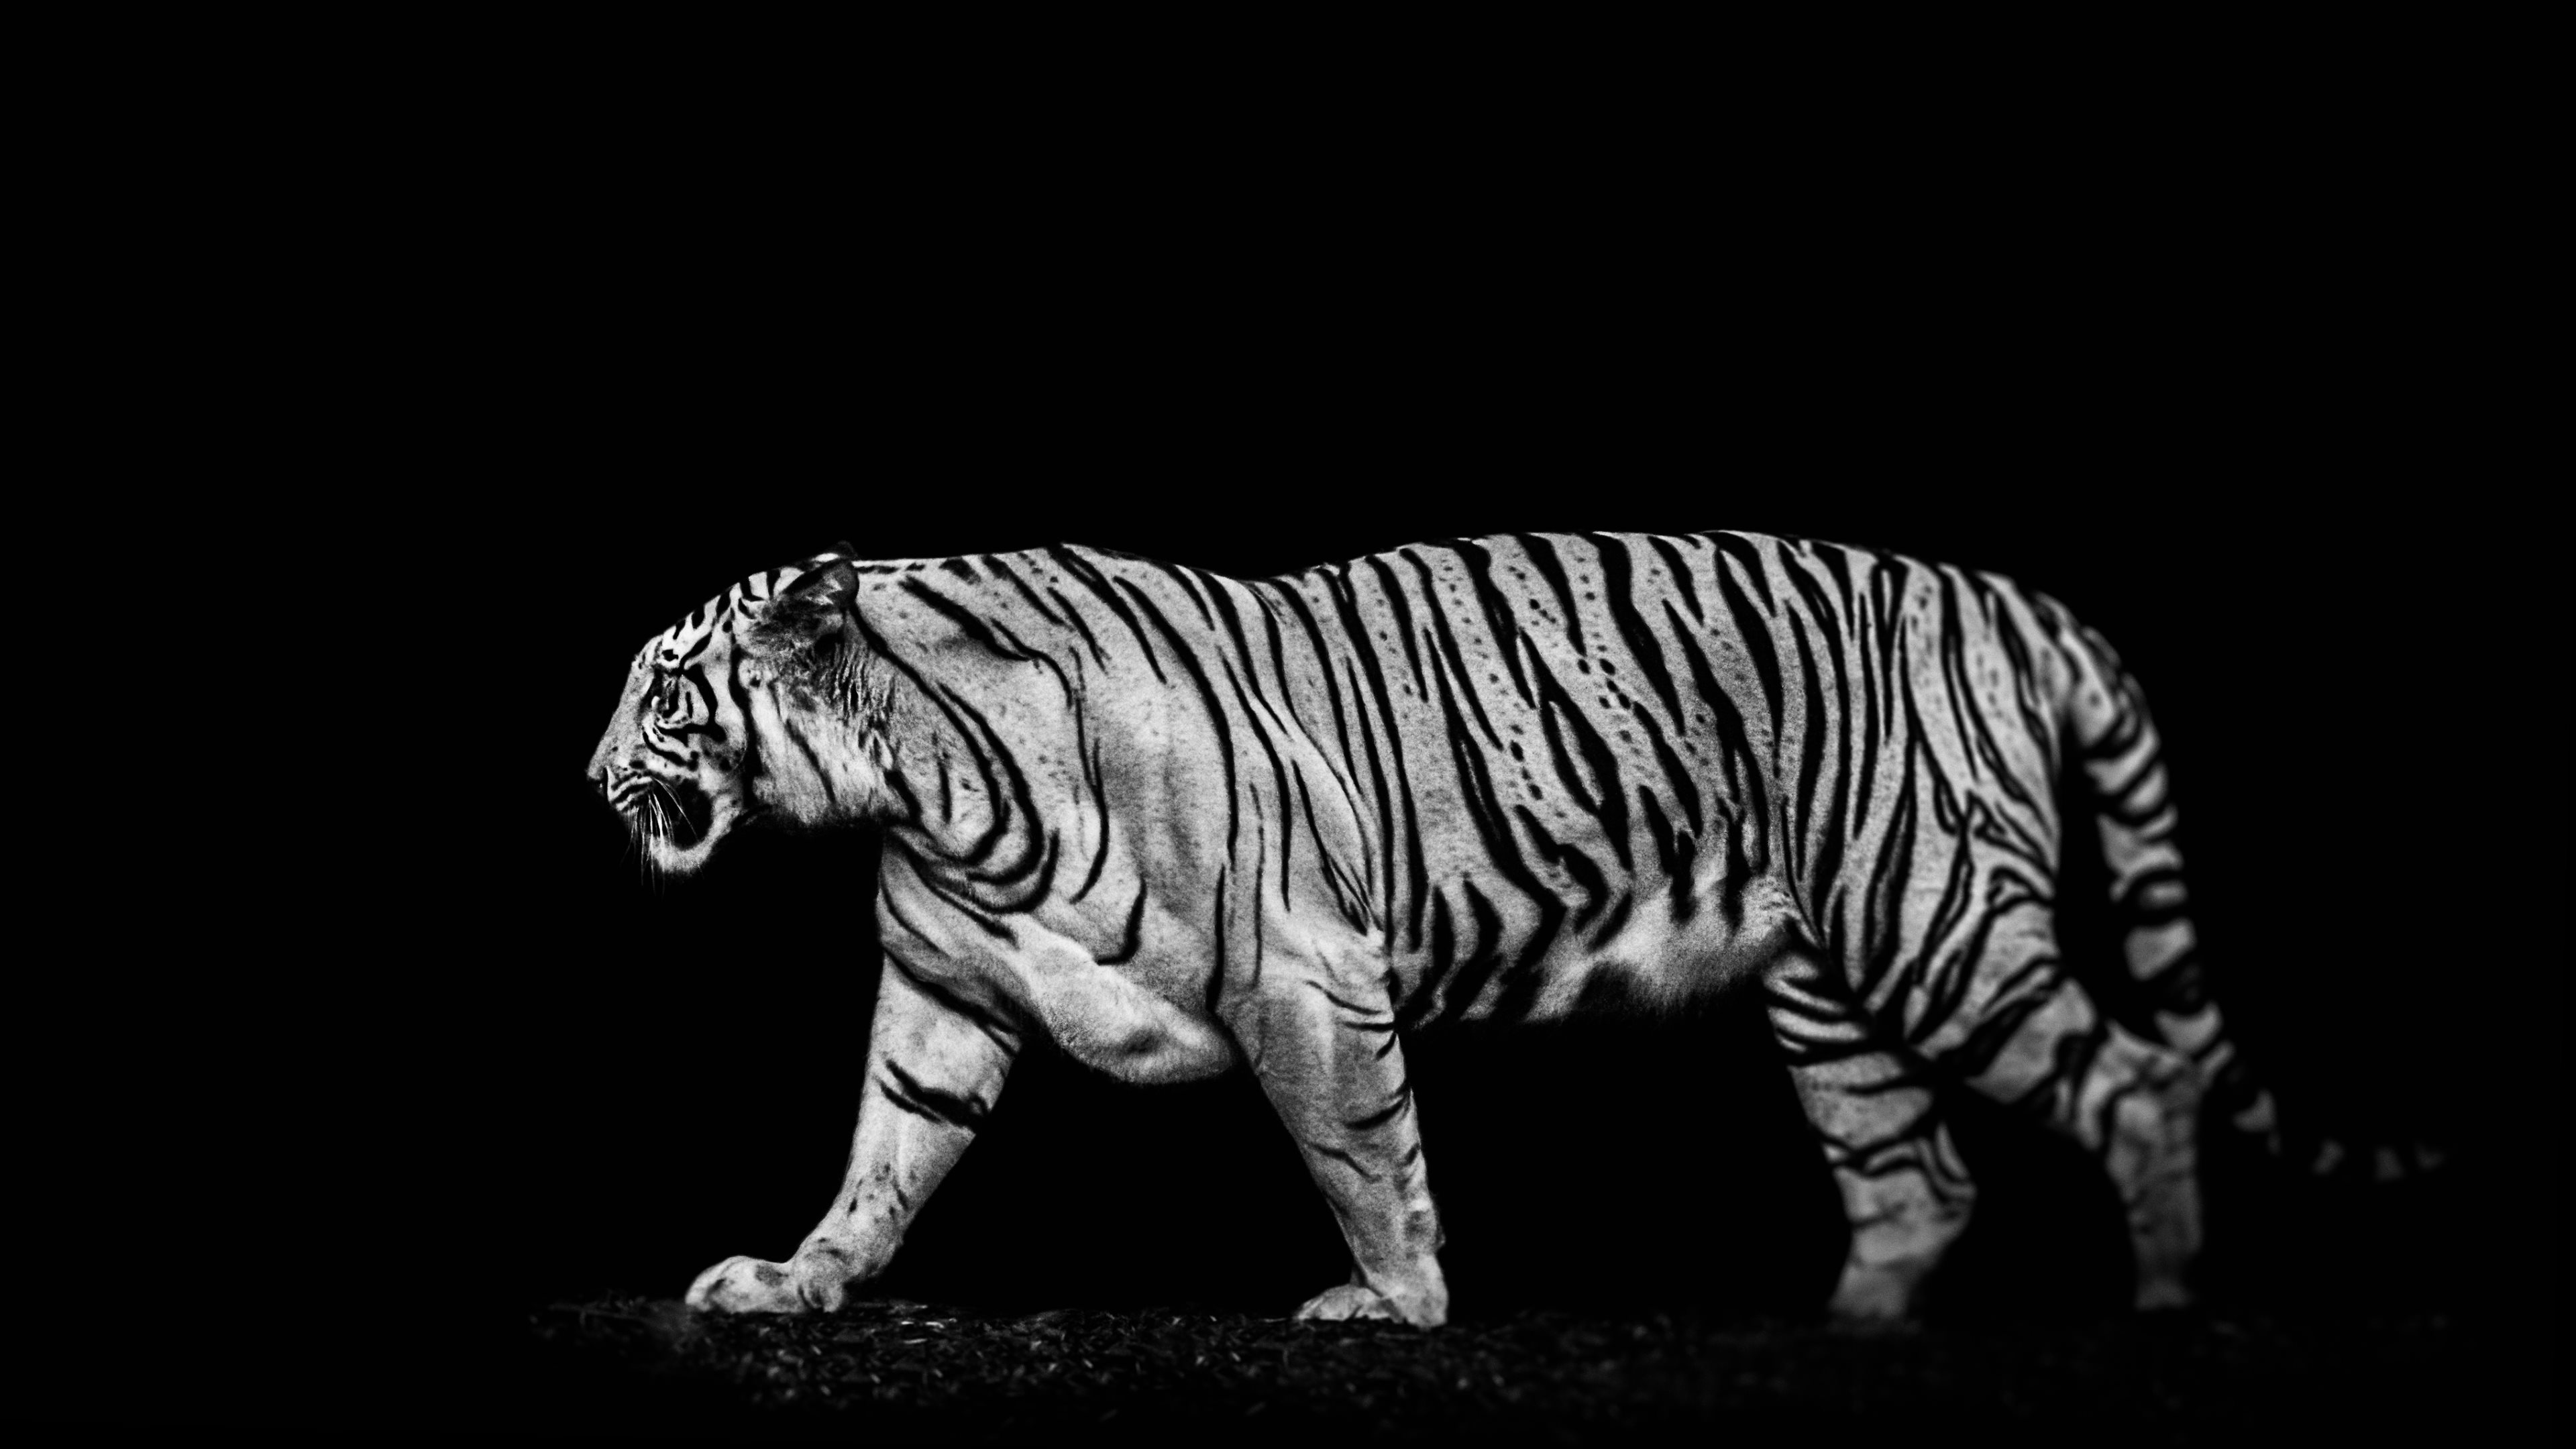 wallpaper.wiki-white-tiger-photo-download-free-pic-wpe006666